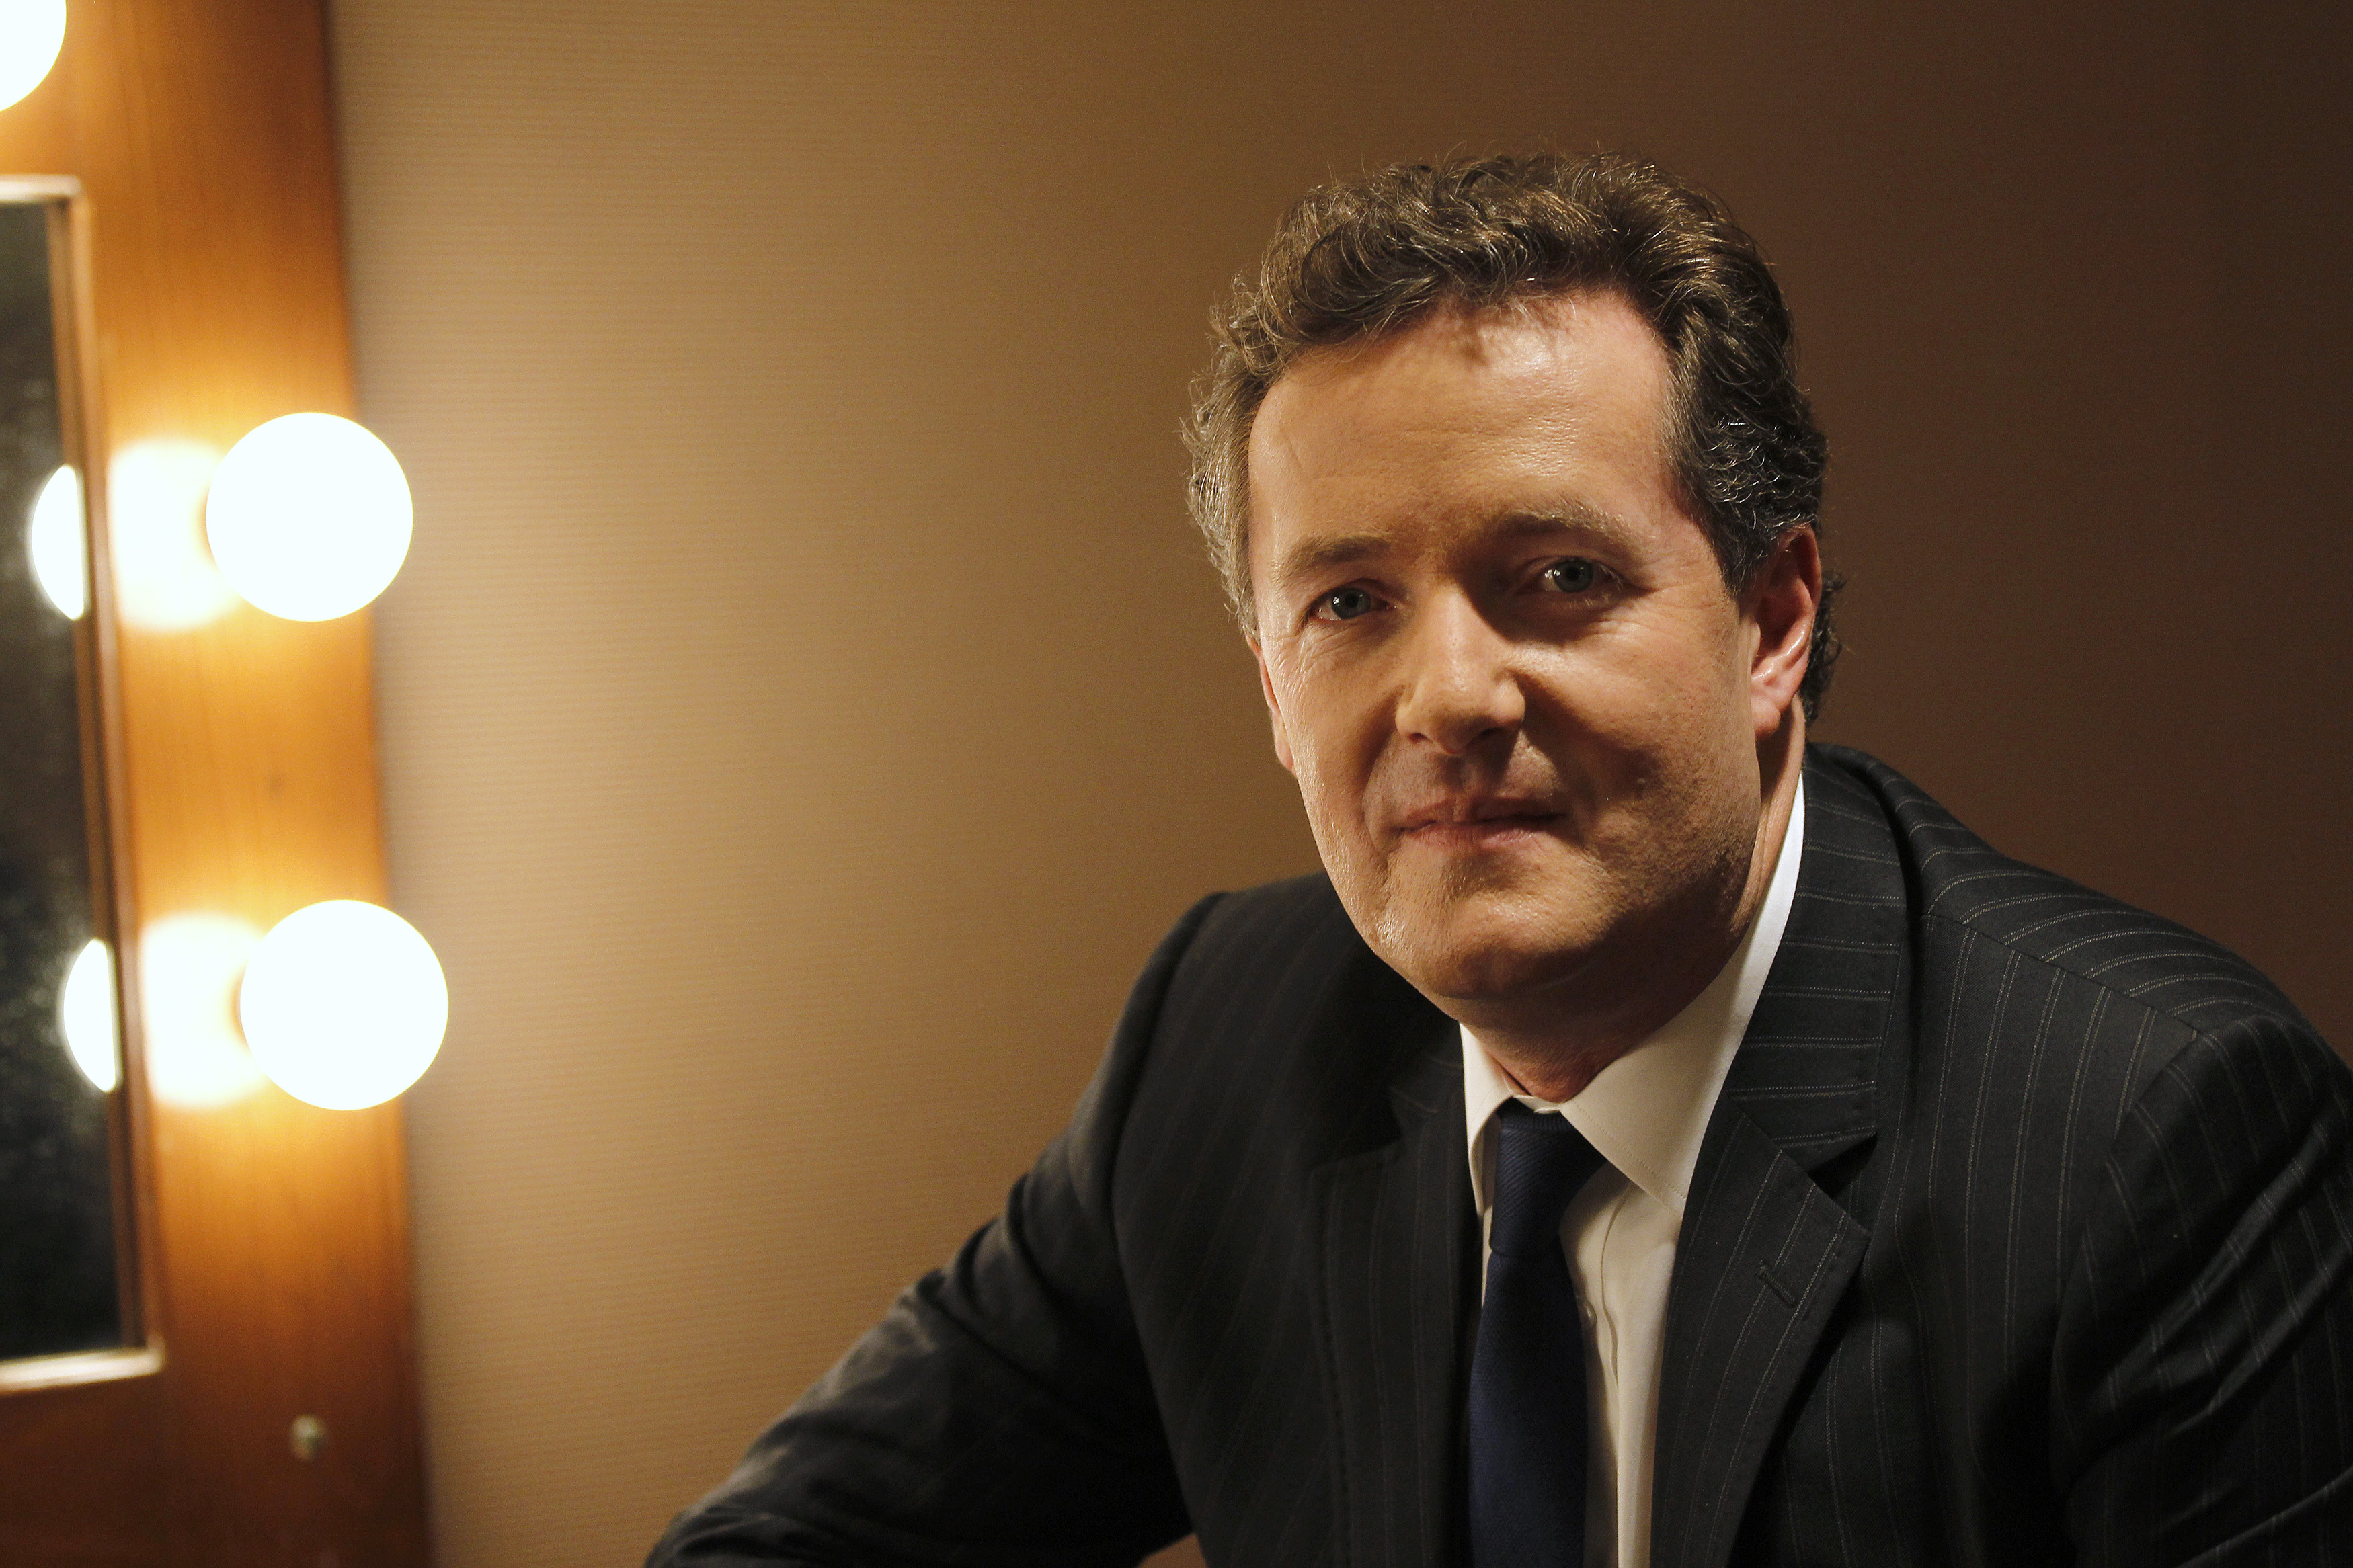 """Piers Morgan, host of """"Piers Morgan Tonight,"""" poses during the Turner Broadcasting Television Critics Association winter press tour in Pasadena, California January 6, 2011.  REUTERS/Mario Anzuoni (UNITED STATES - Tags: ENTERTAINMENT)"""